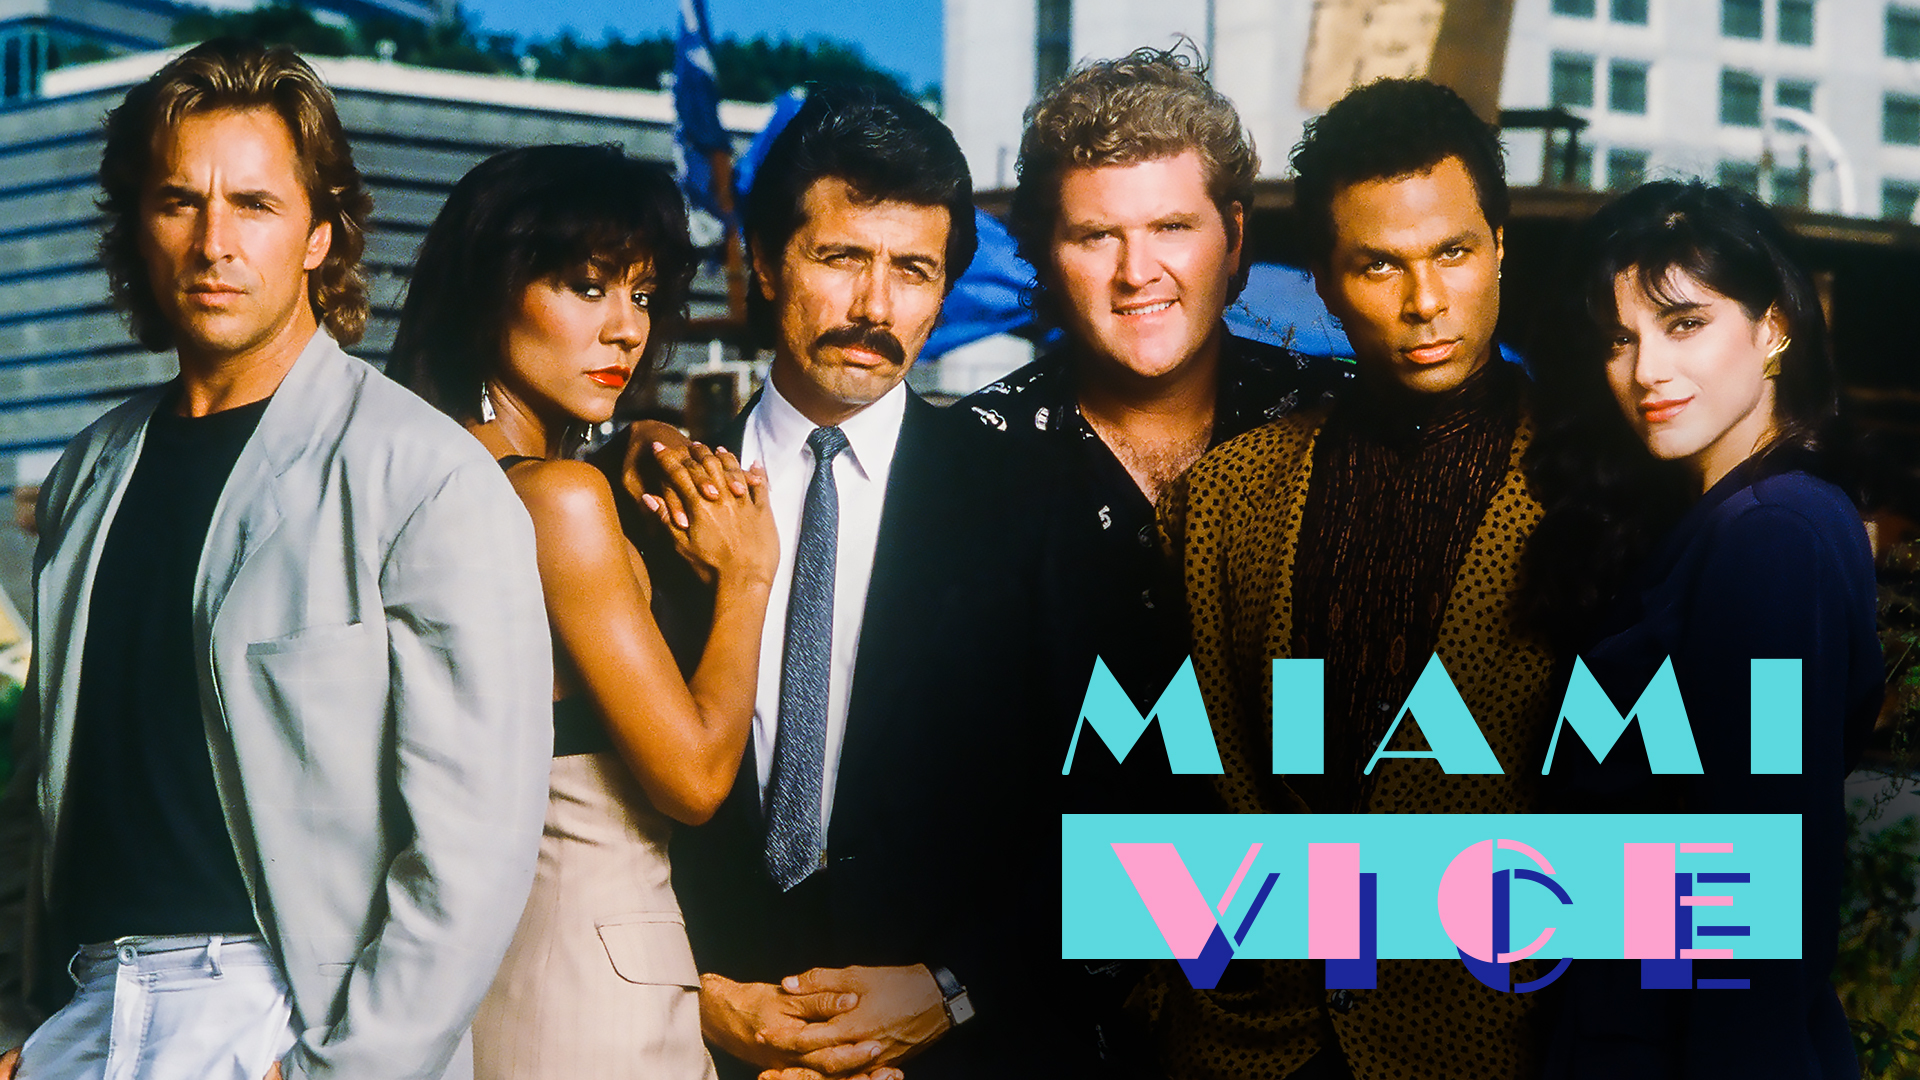 MiamiVice-AboutImage-1920x1080-KO.jpg